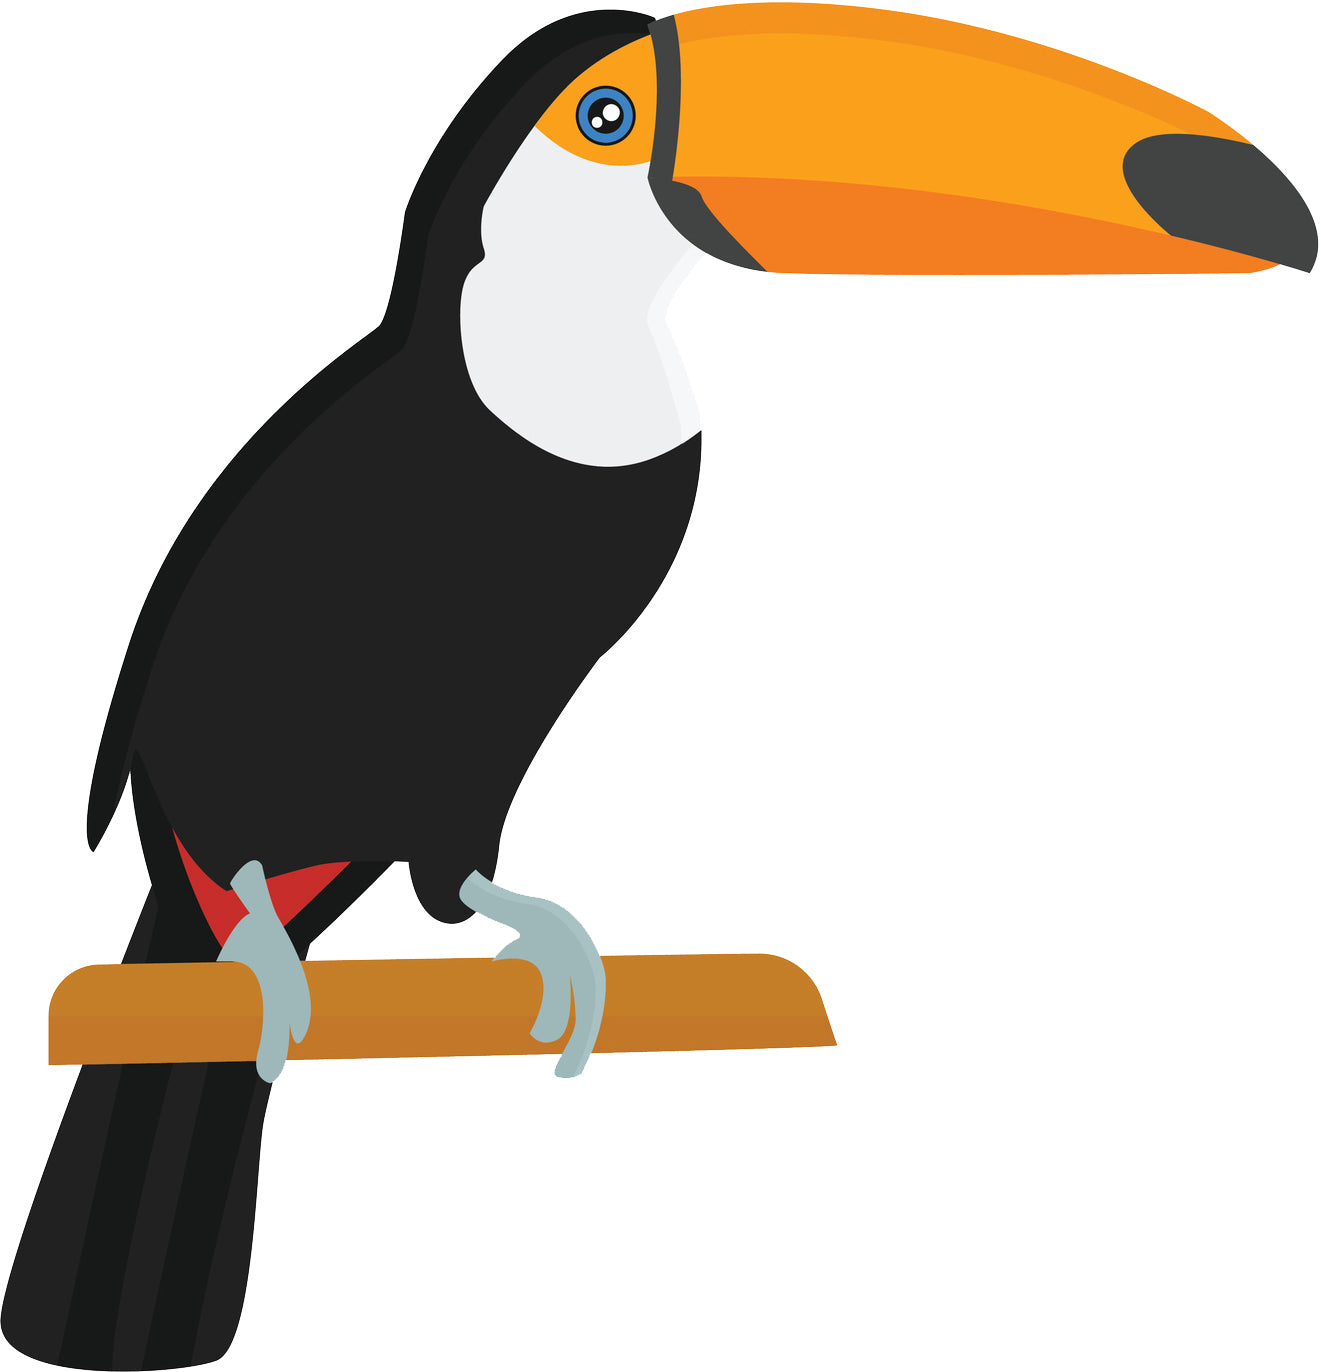 Pretty Kindergarten Toucan Bird on Perch Cartoon Vinyl Decal Sticker